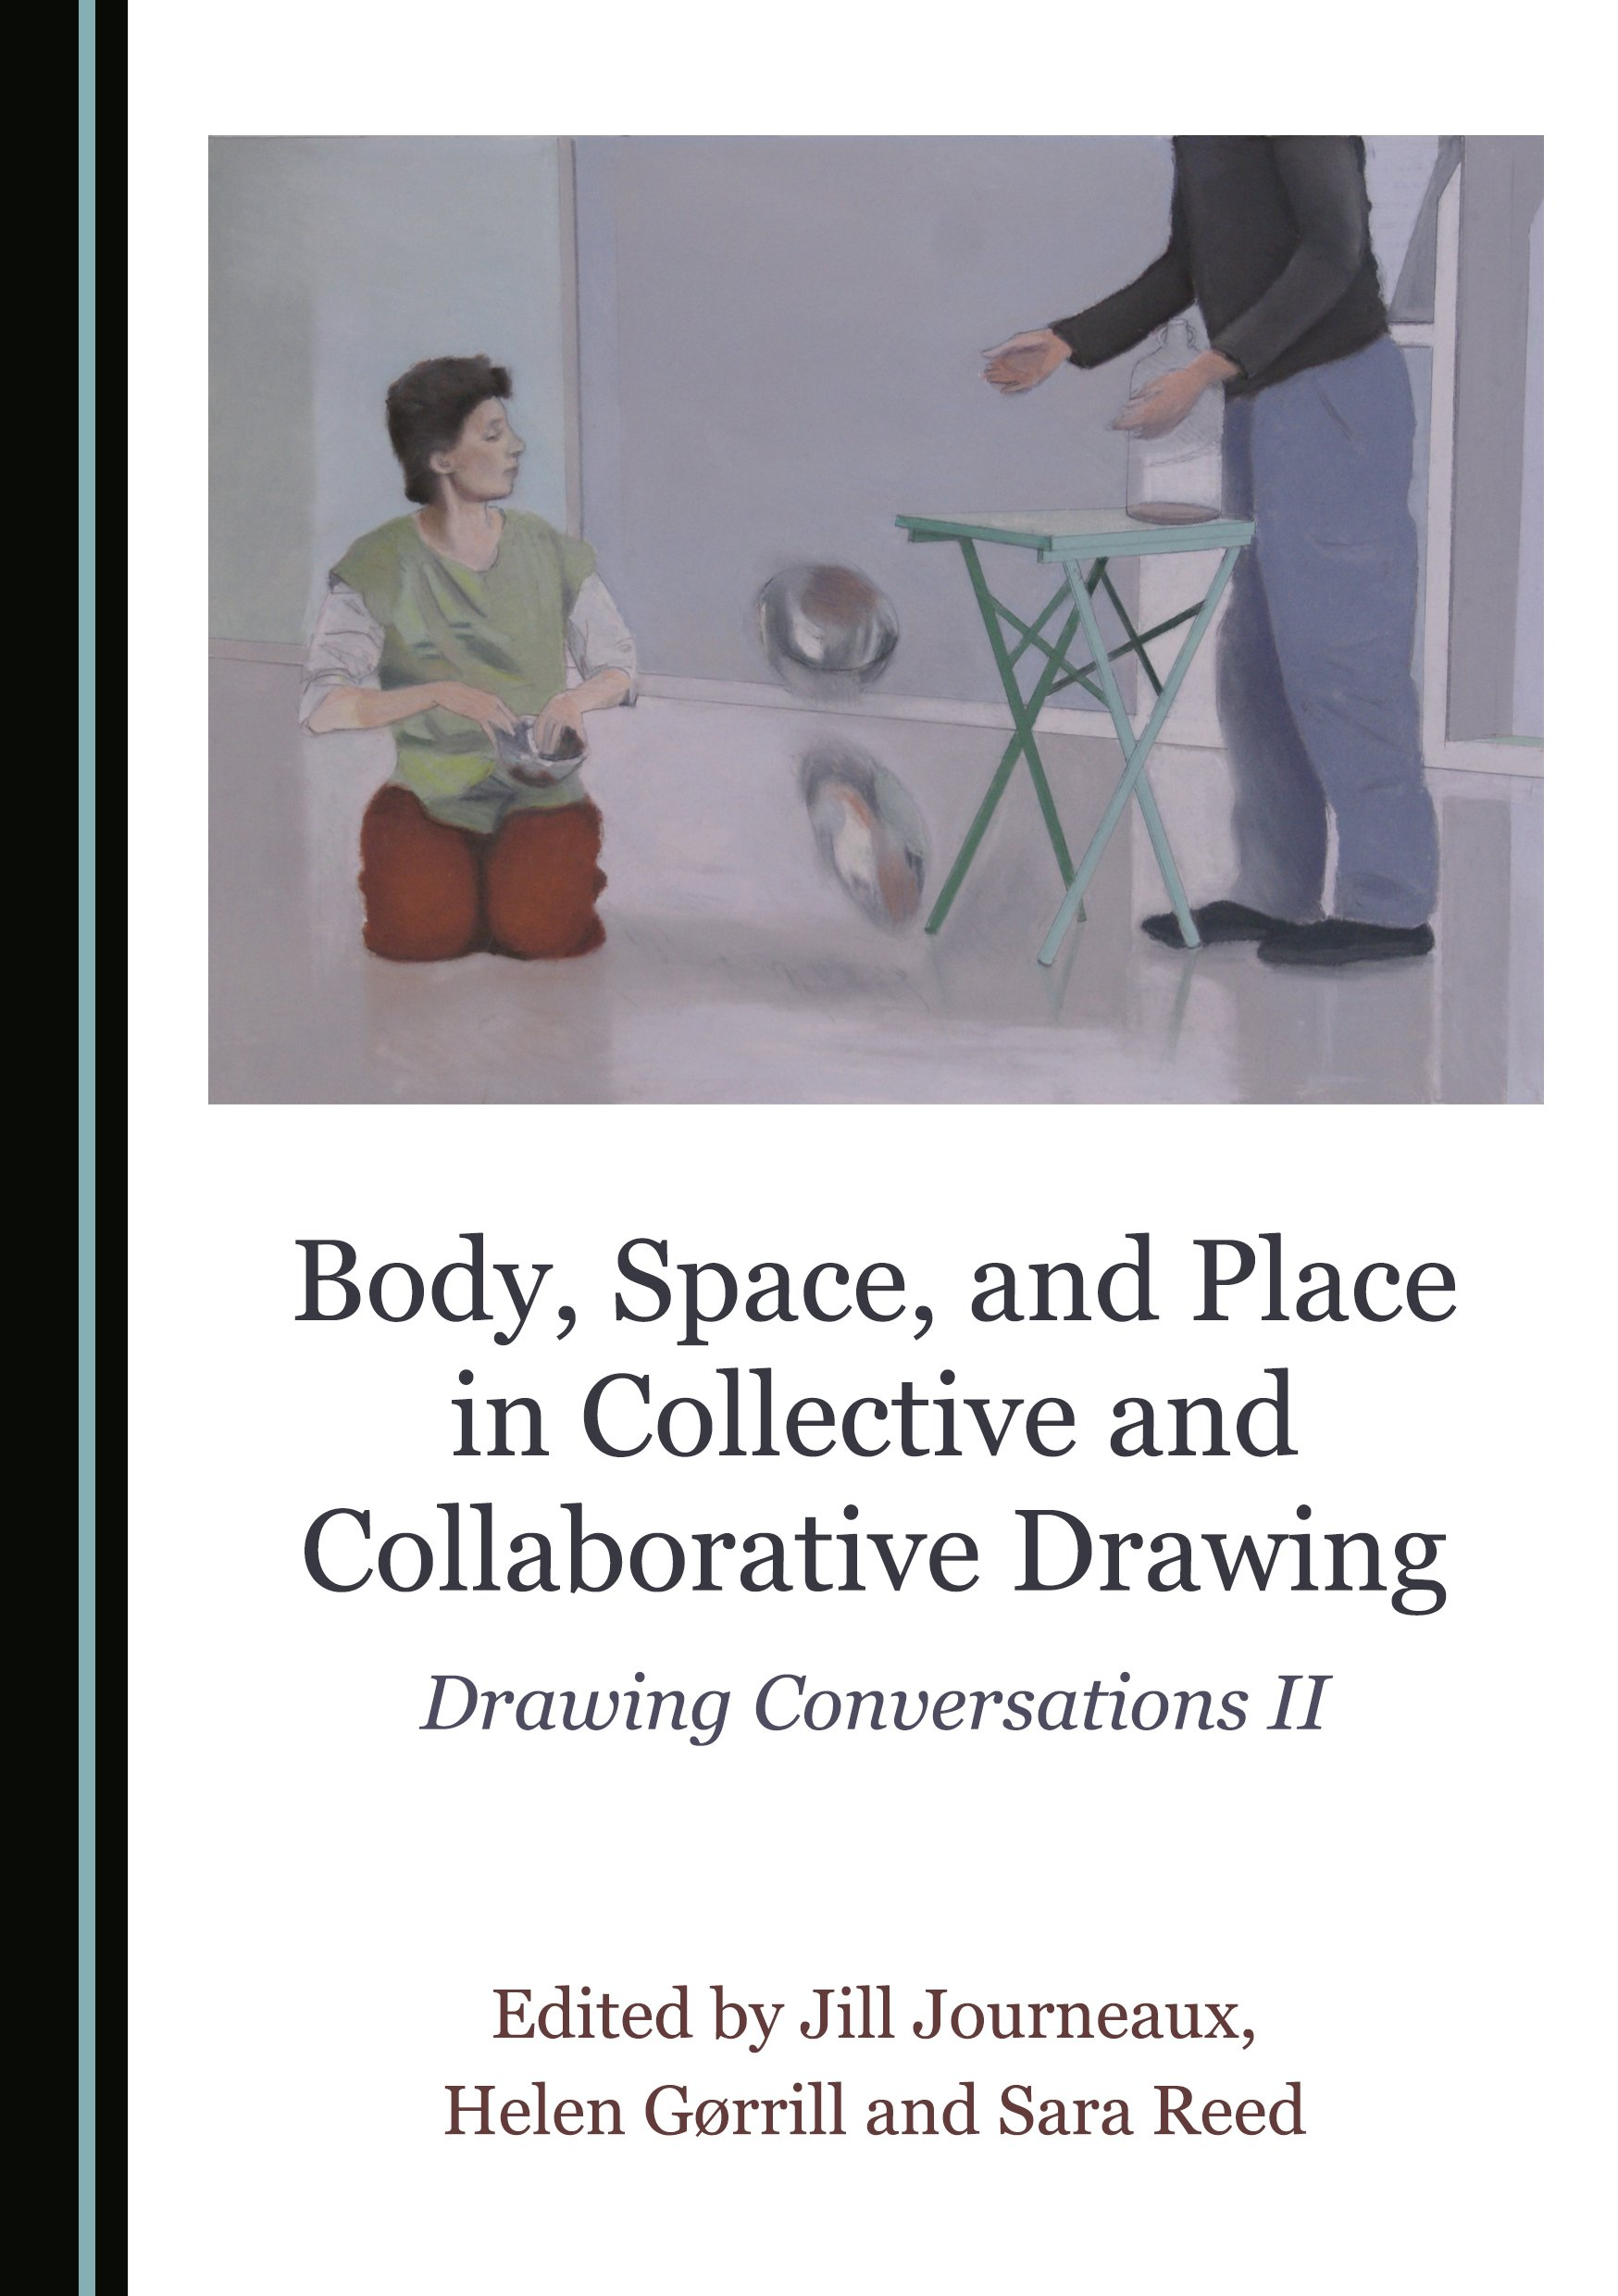 Body, Space, and Place in Collective and Collaborative Drawing: Drawing Conversations II